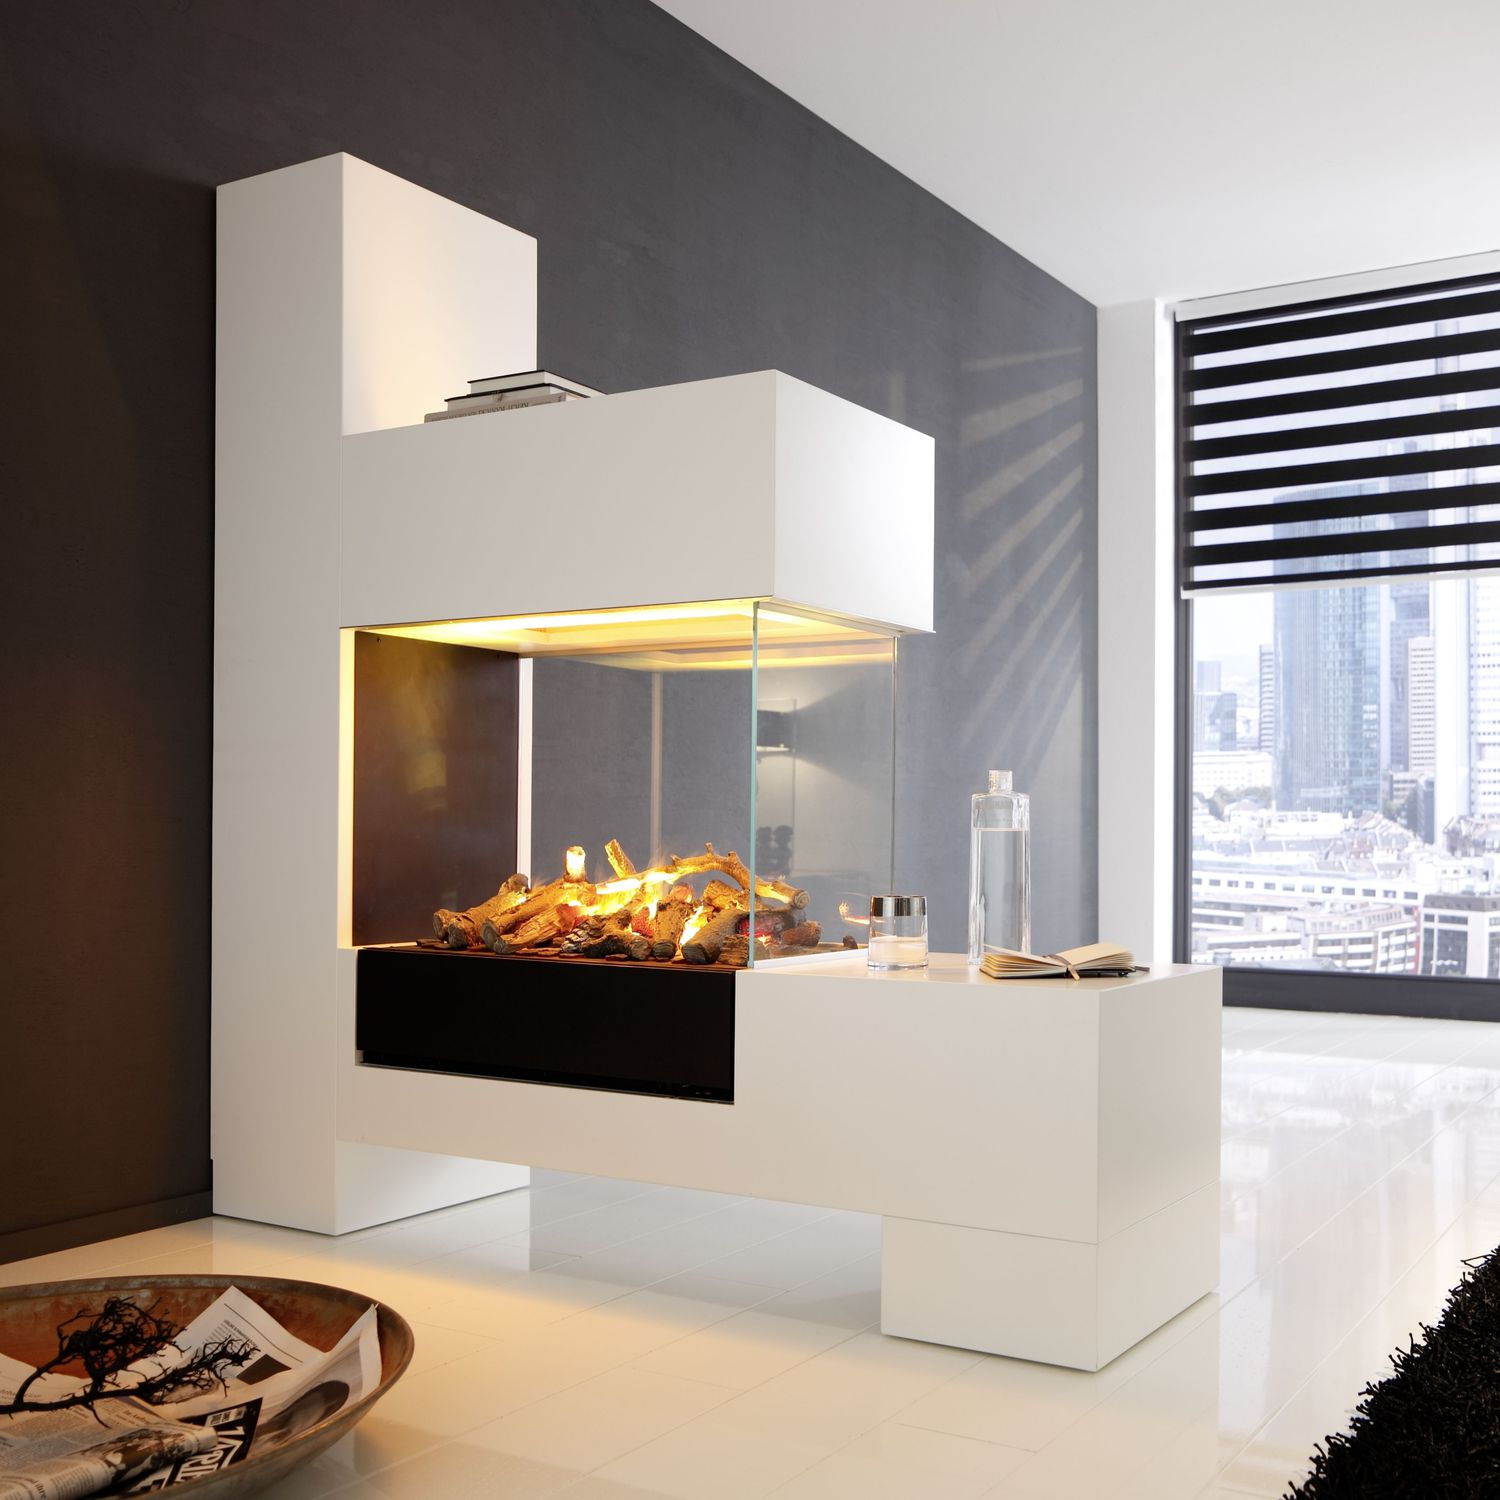 Aspect Splan 21 El Electric Fireplace Contemporary Closed Hearth 3 Sided By Kamin Design Gmbh Co Kg Ingolstadt Archiexpo